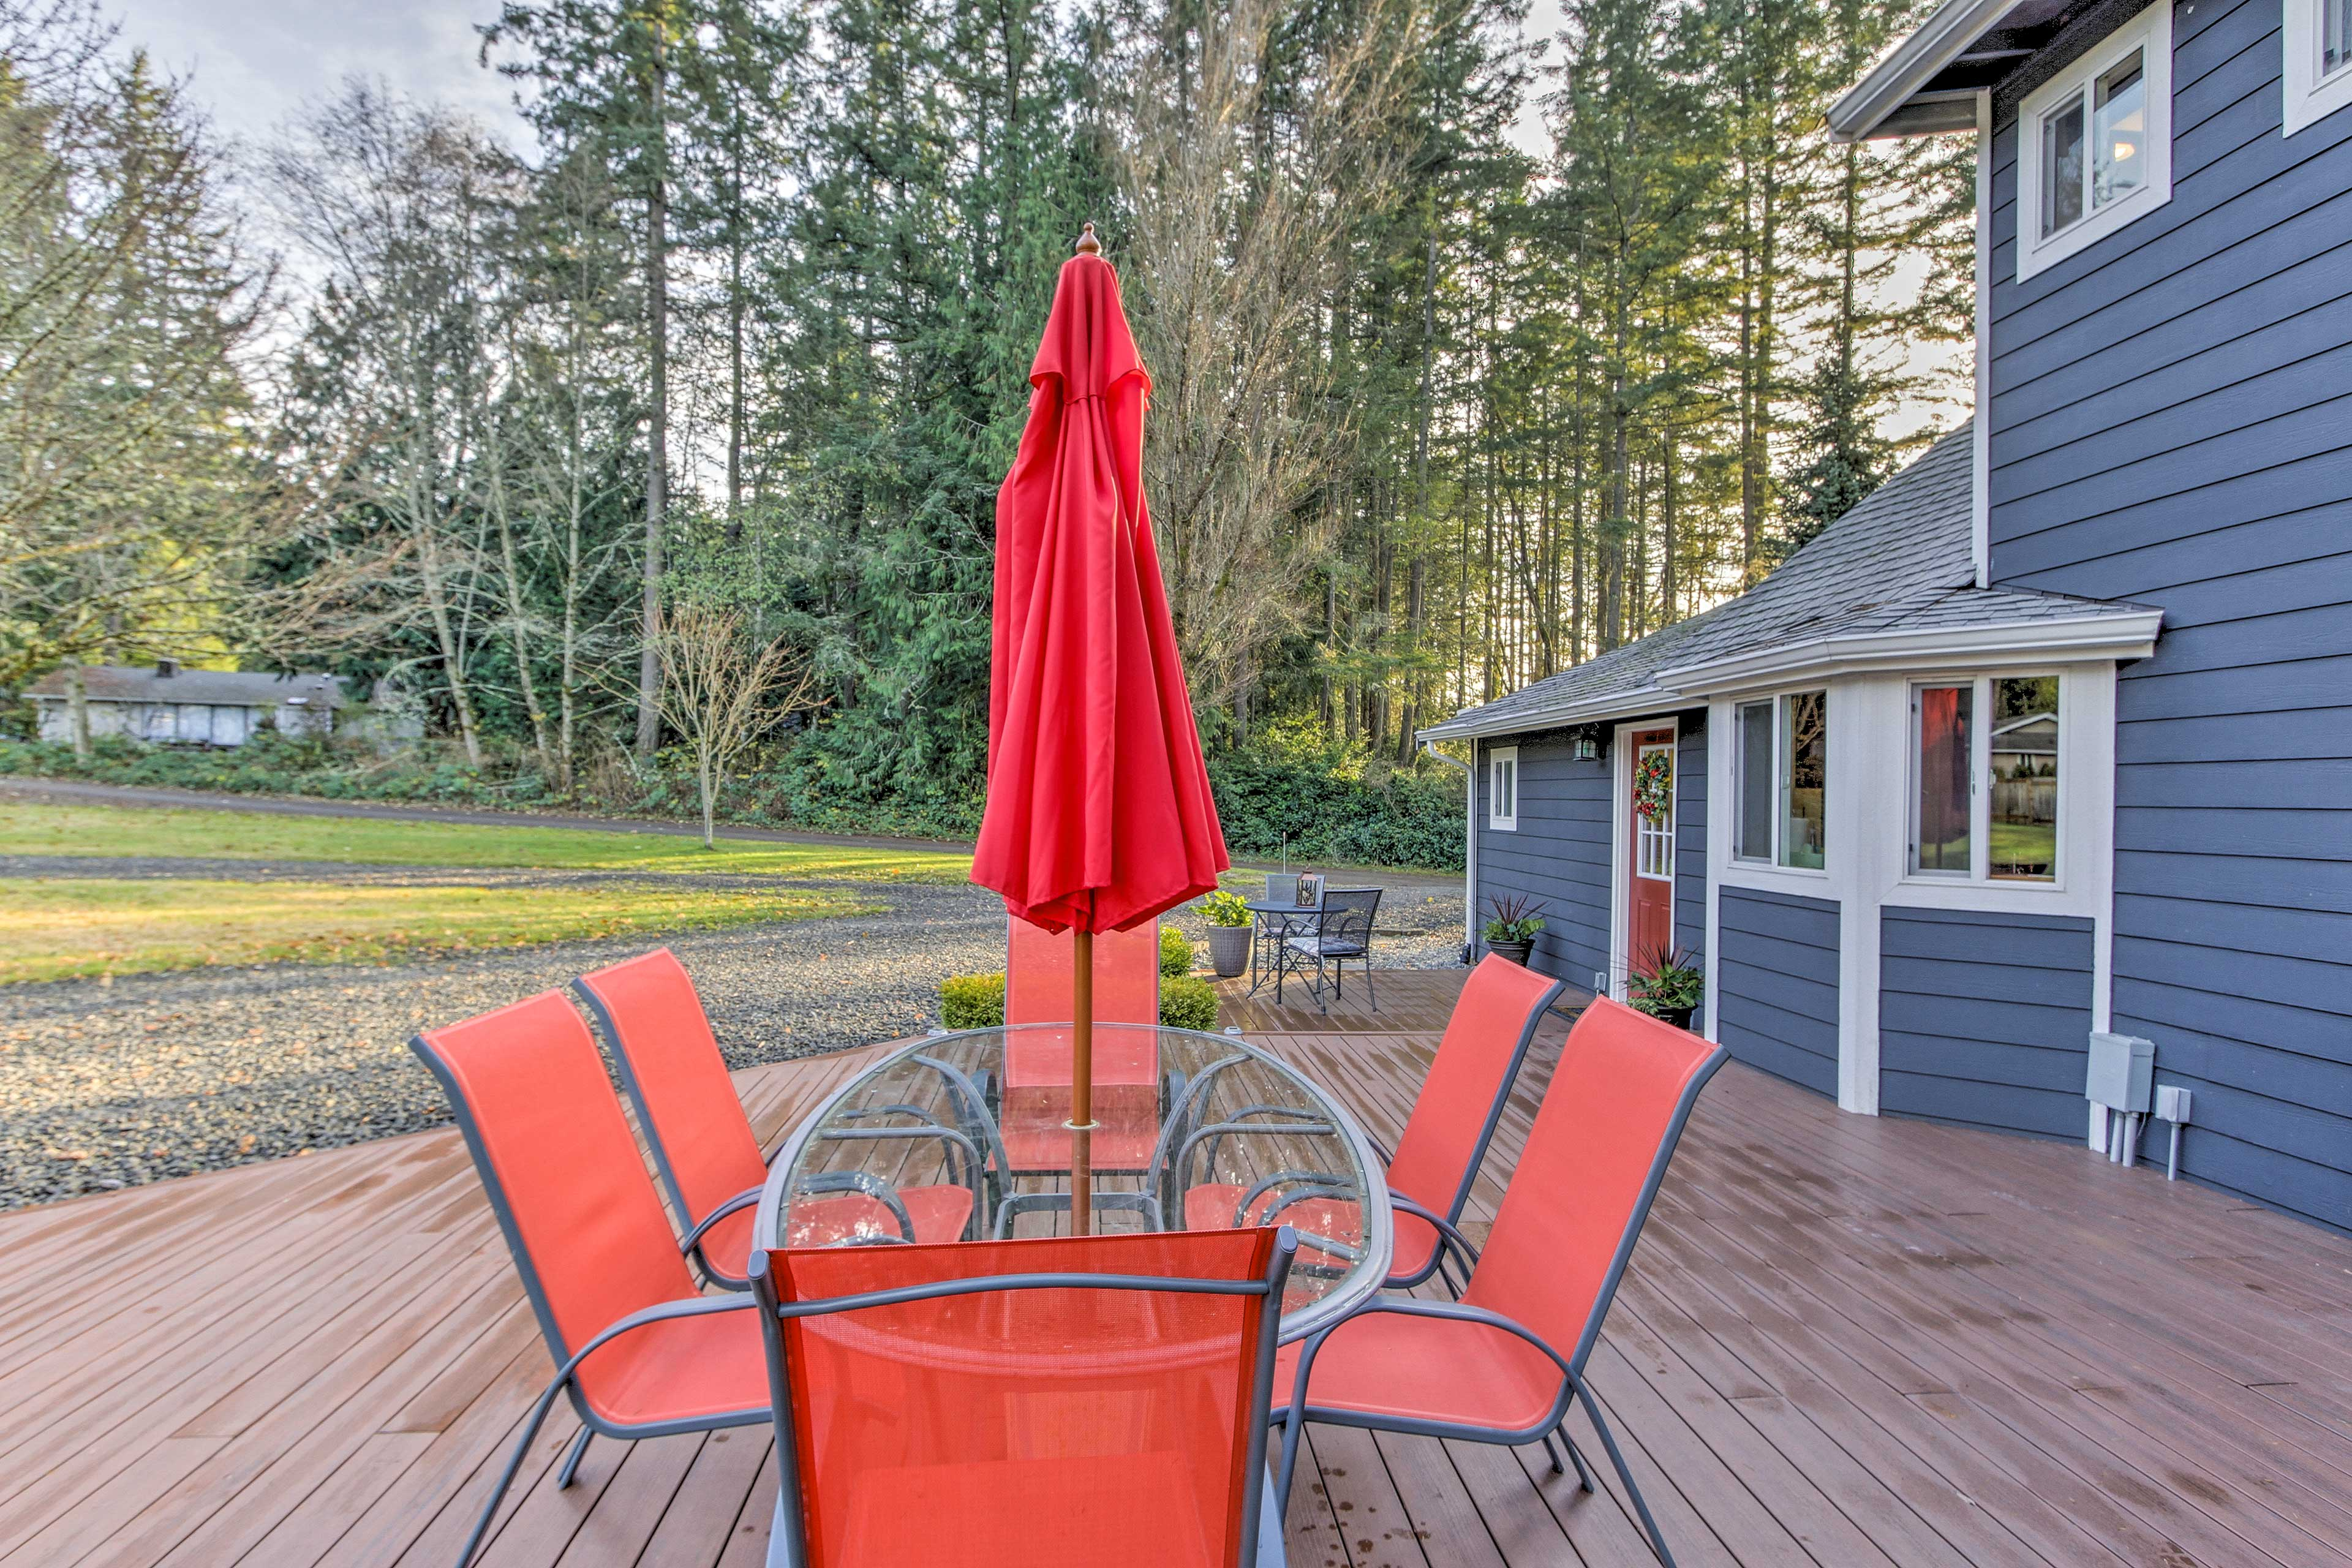 Fire up the gas grill and enjoy a family barbecue at the outdoor 6-person table.